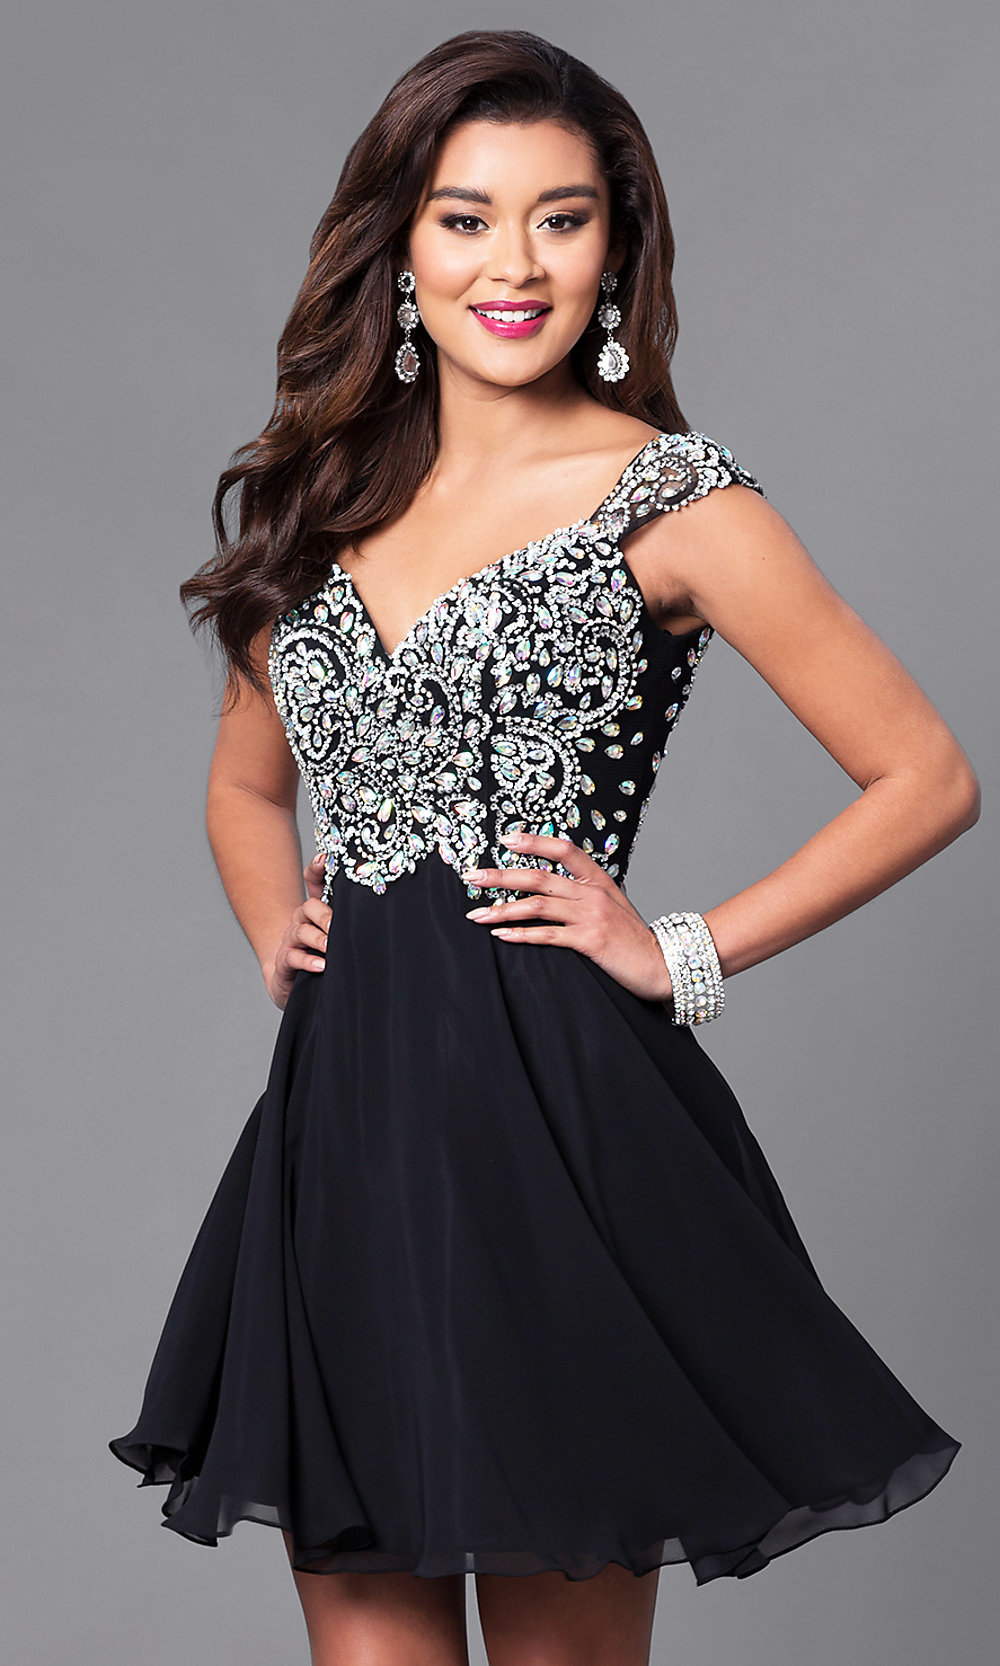 Jewel Embellished Short Prom Dress- PromGirl